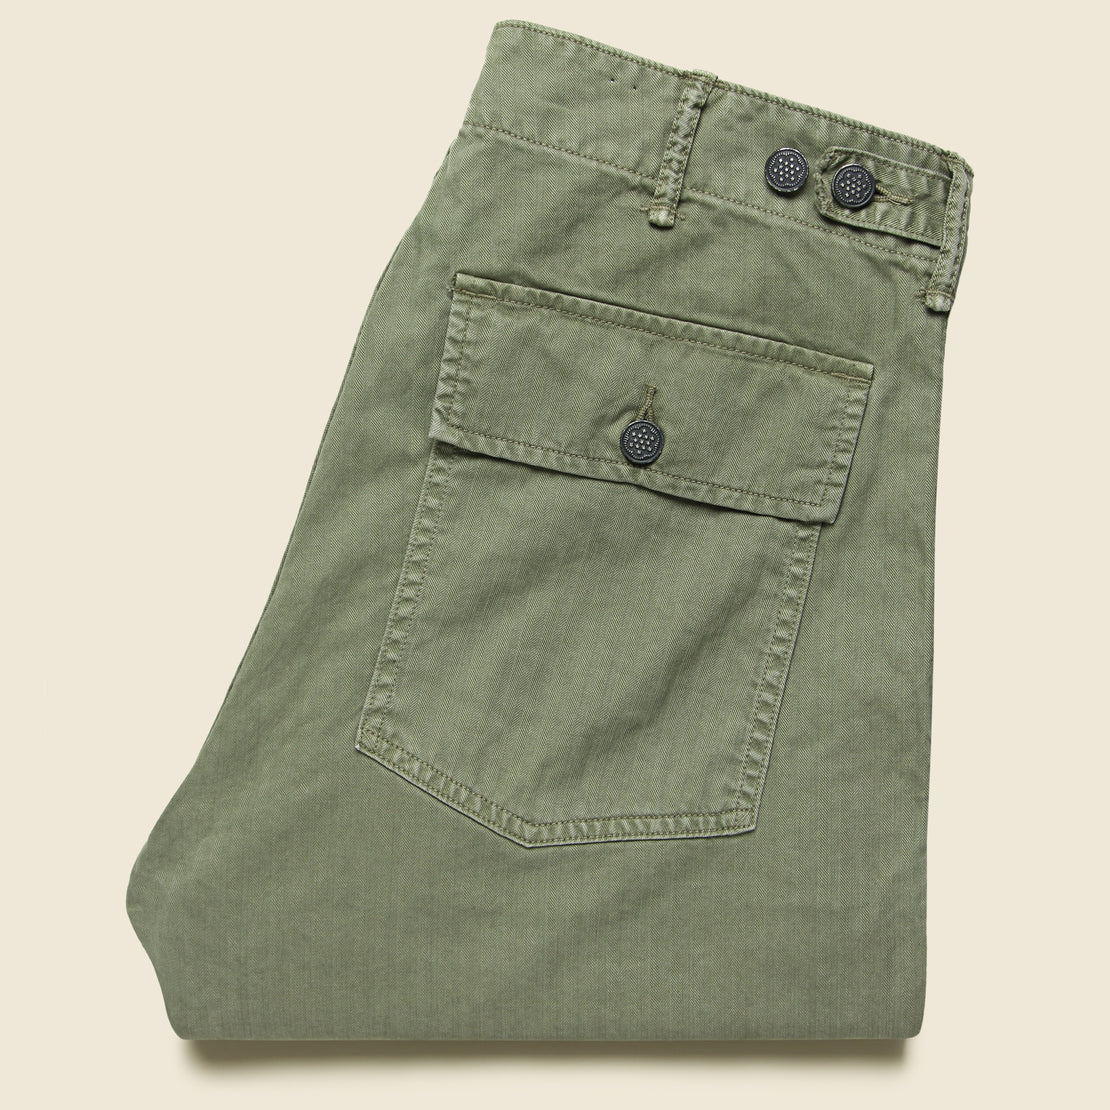 RRL Army Cotton Herringbone Utility Pant - Brewster Green